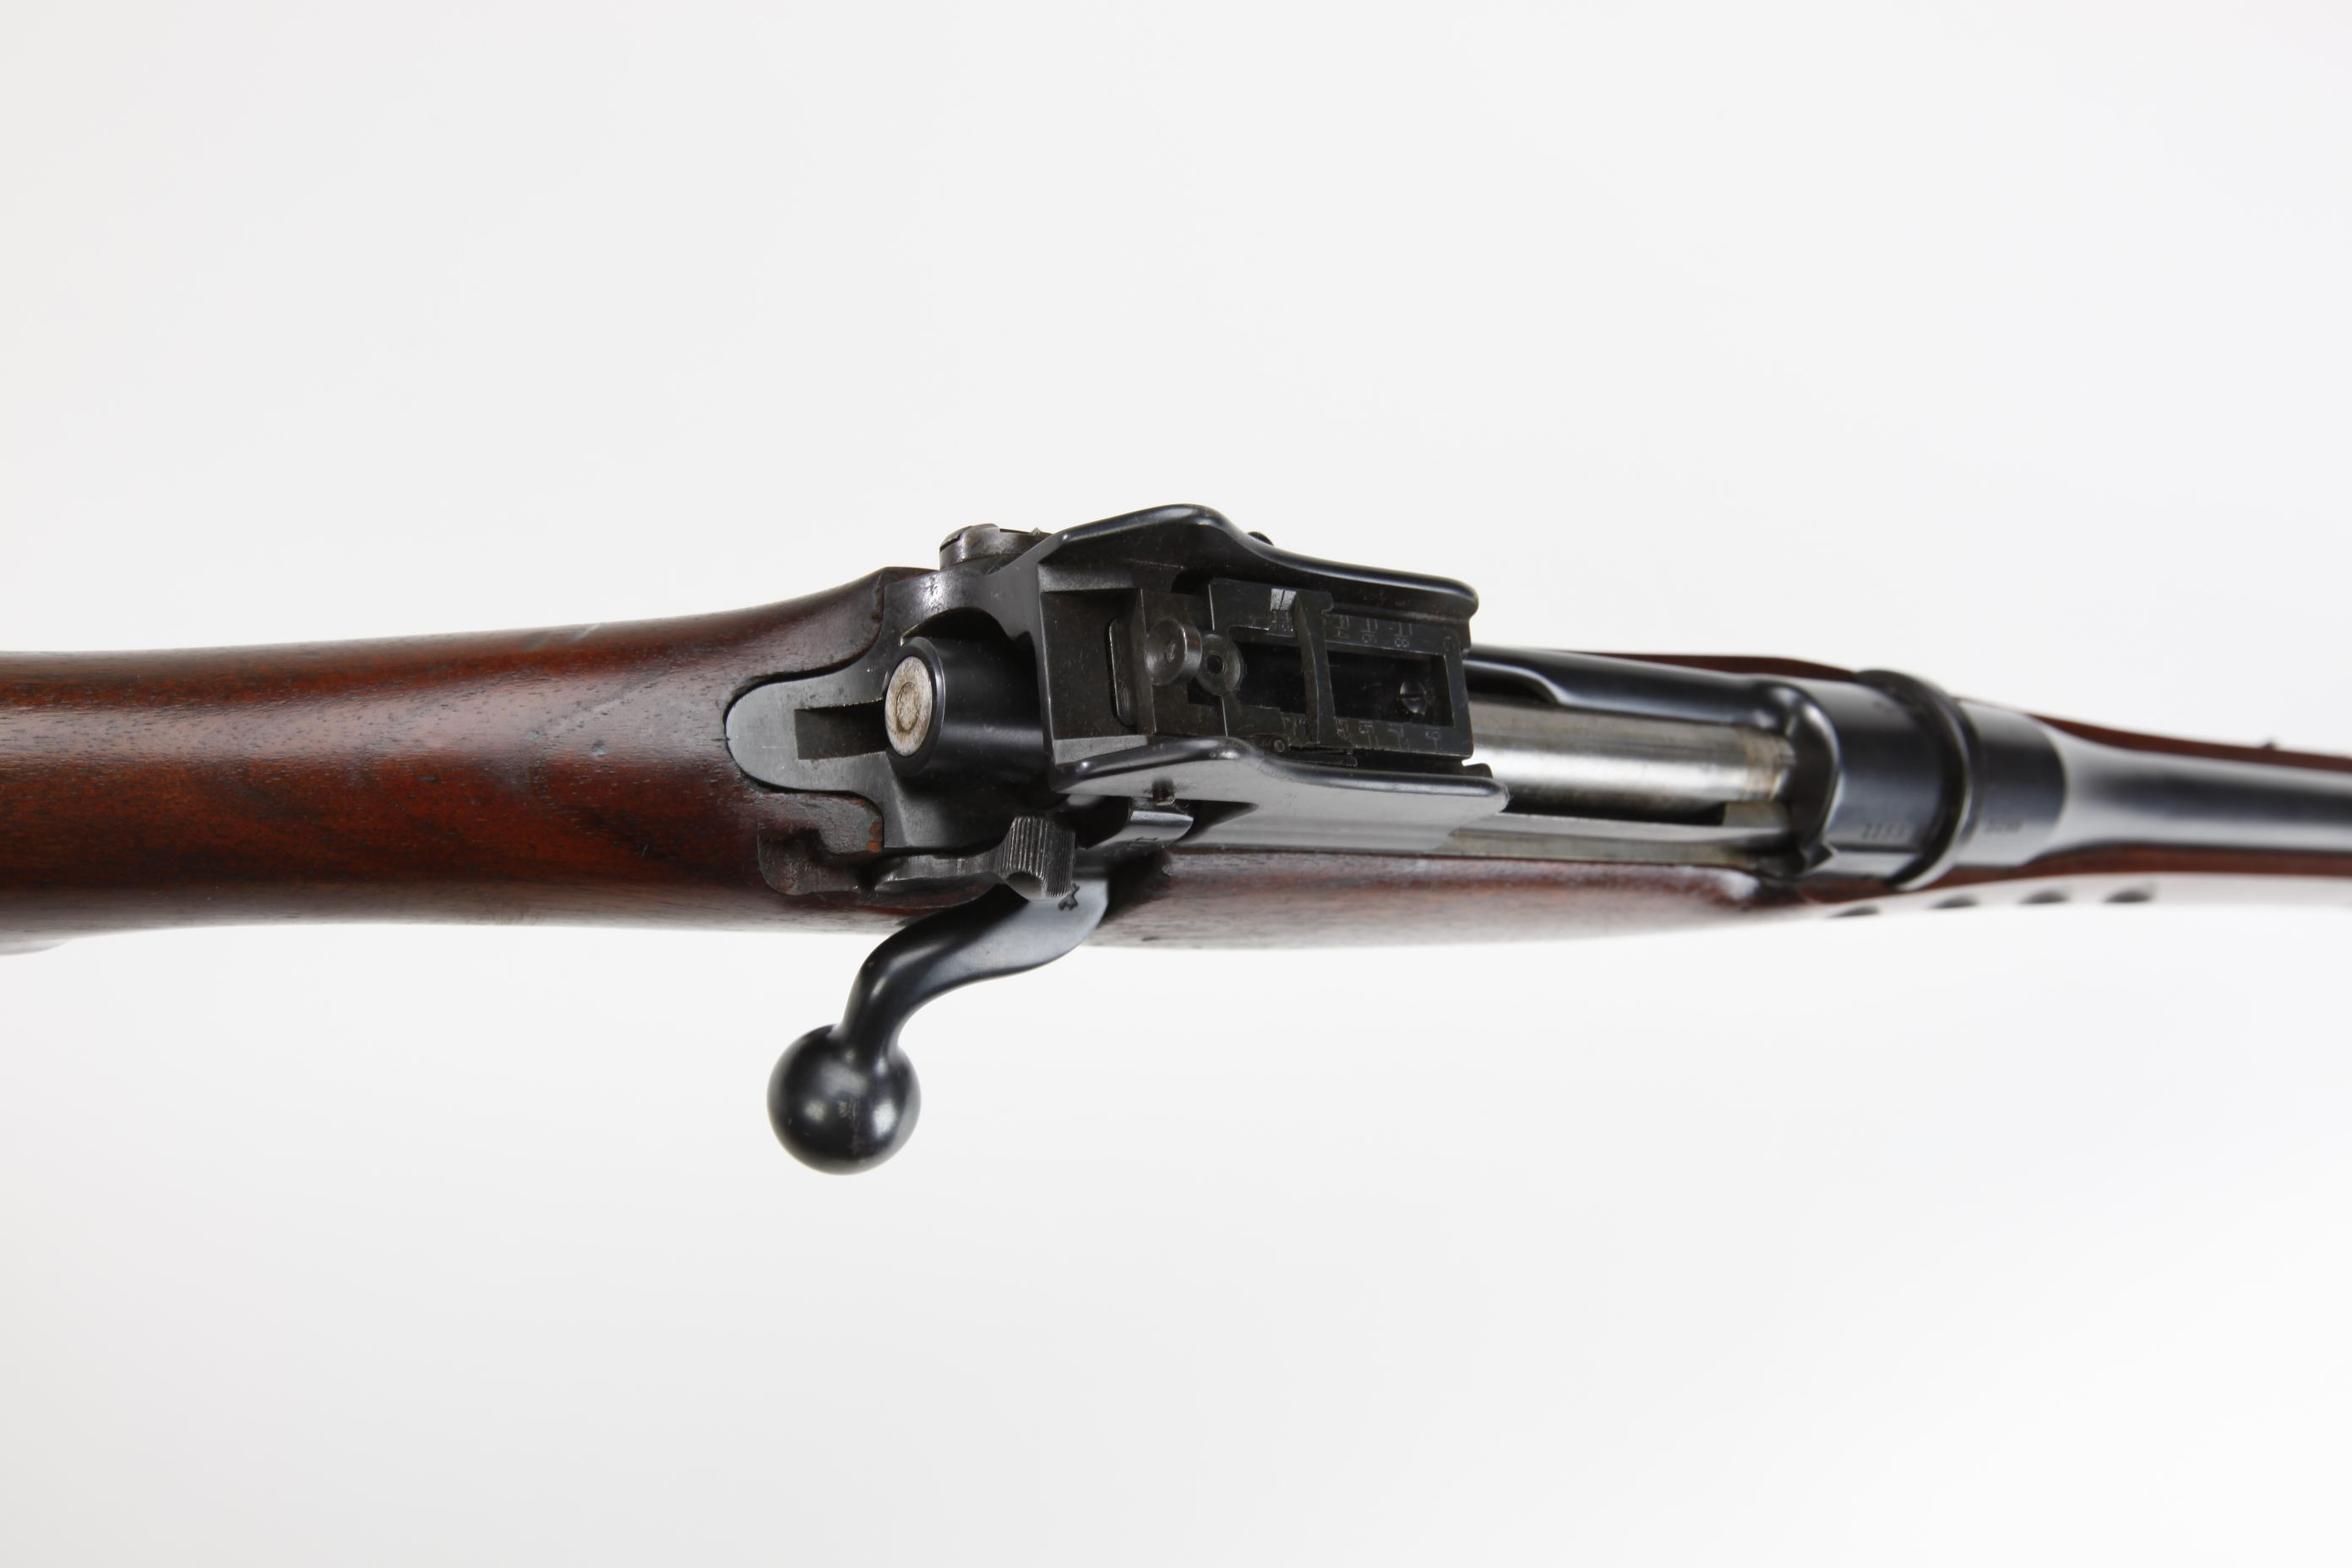 Enfield P13 Bolt Action Rifle